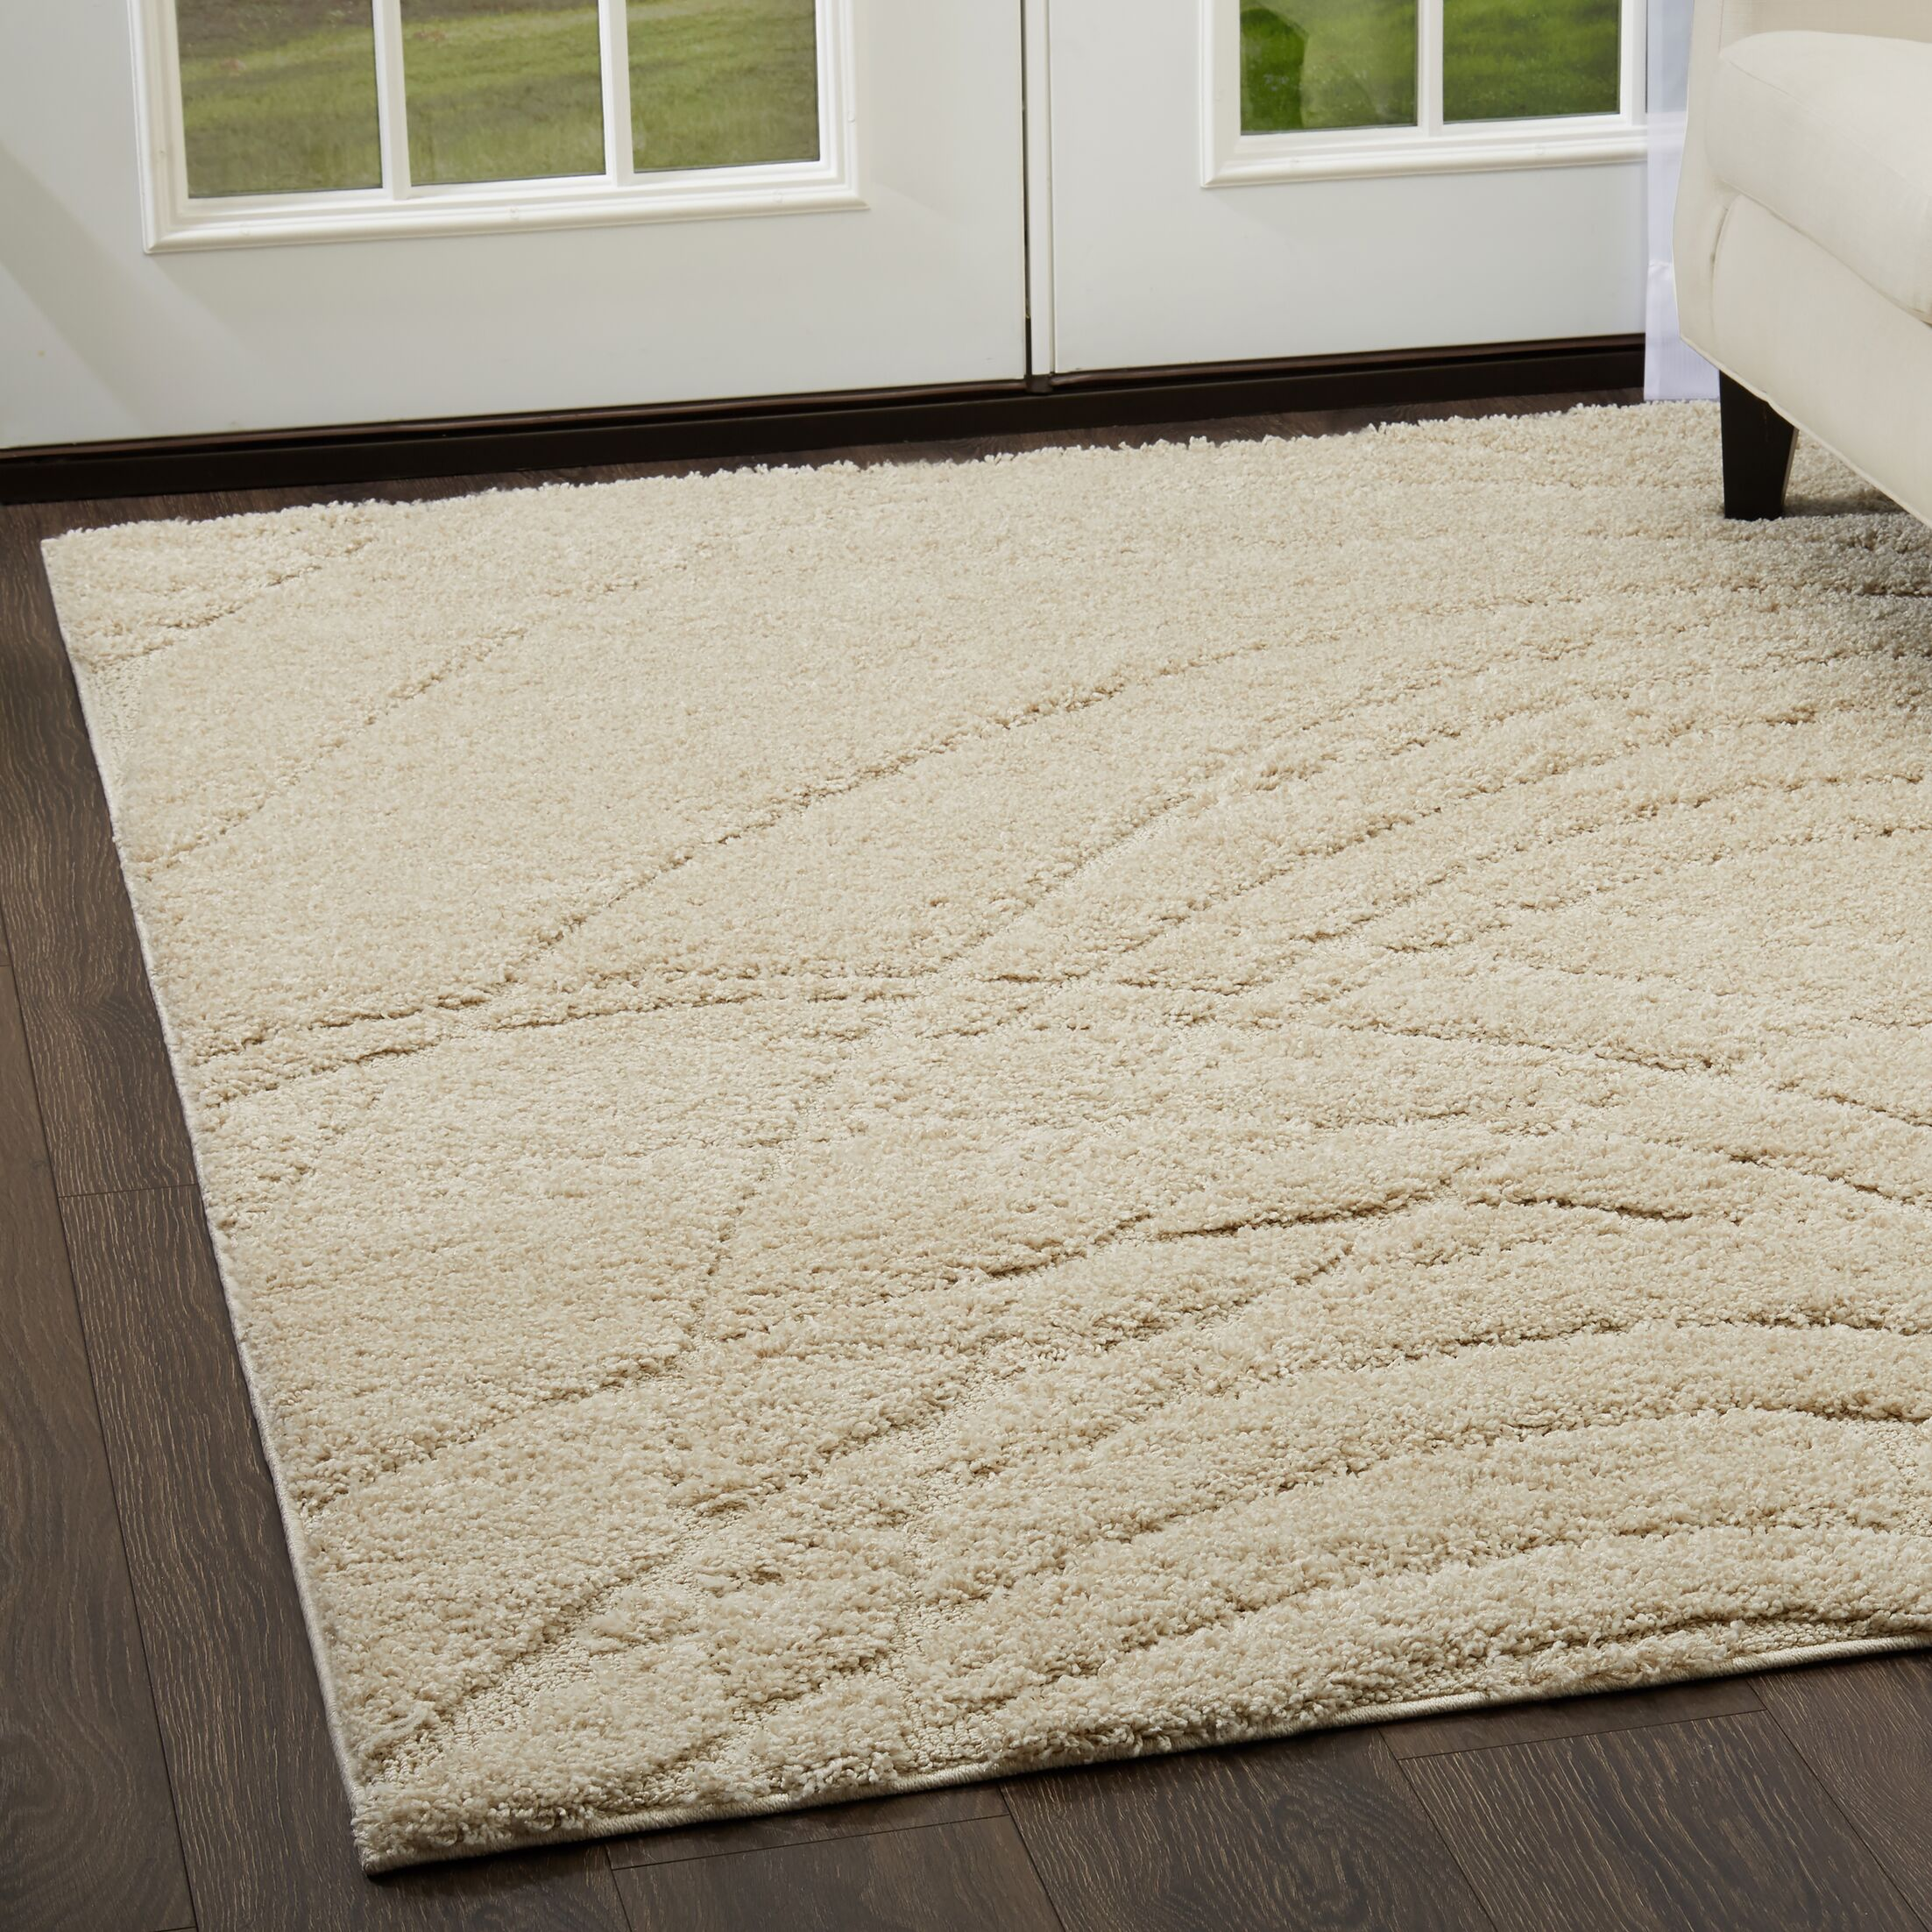 Quince Beige Area Rug Rug Size: Rectangle 7'10